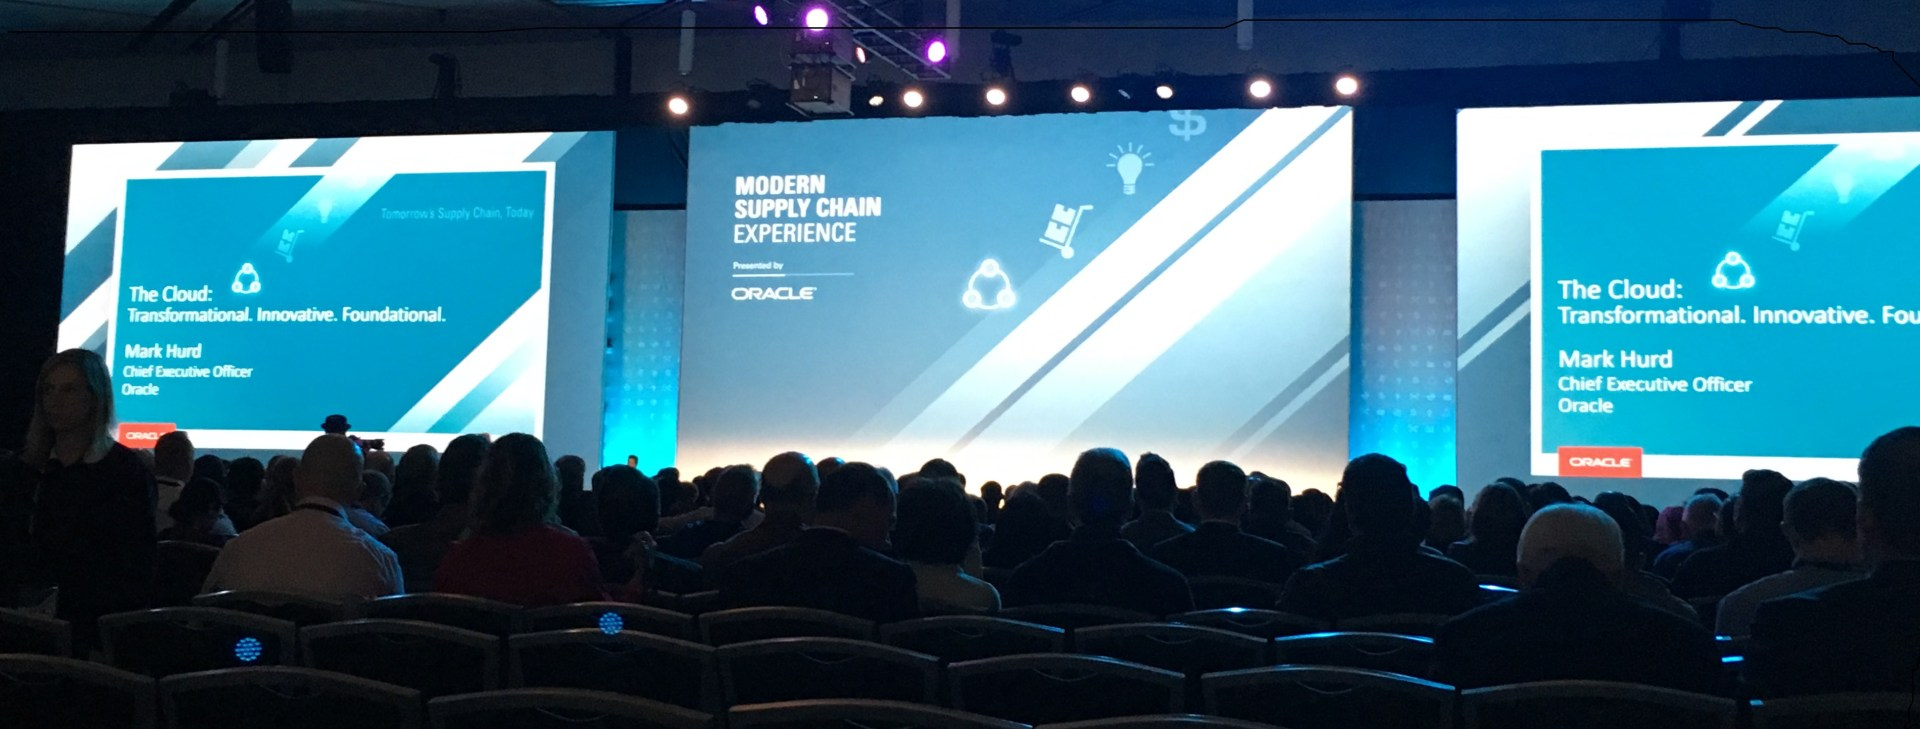 Oracle's CEO, Mark Hurd, at Modern Supply Chain conference